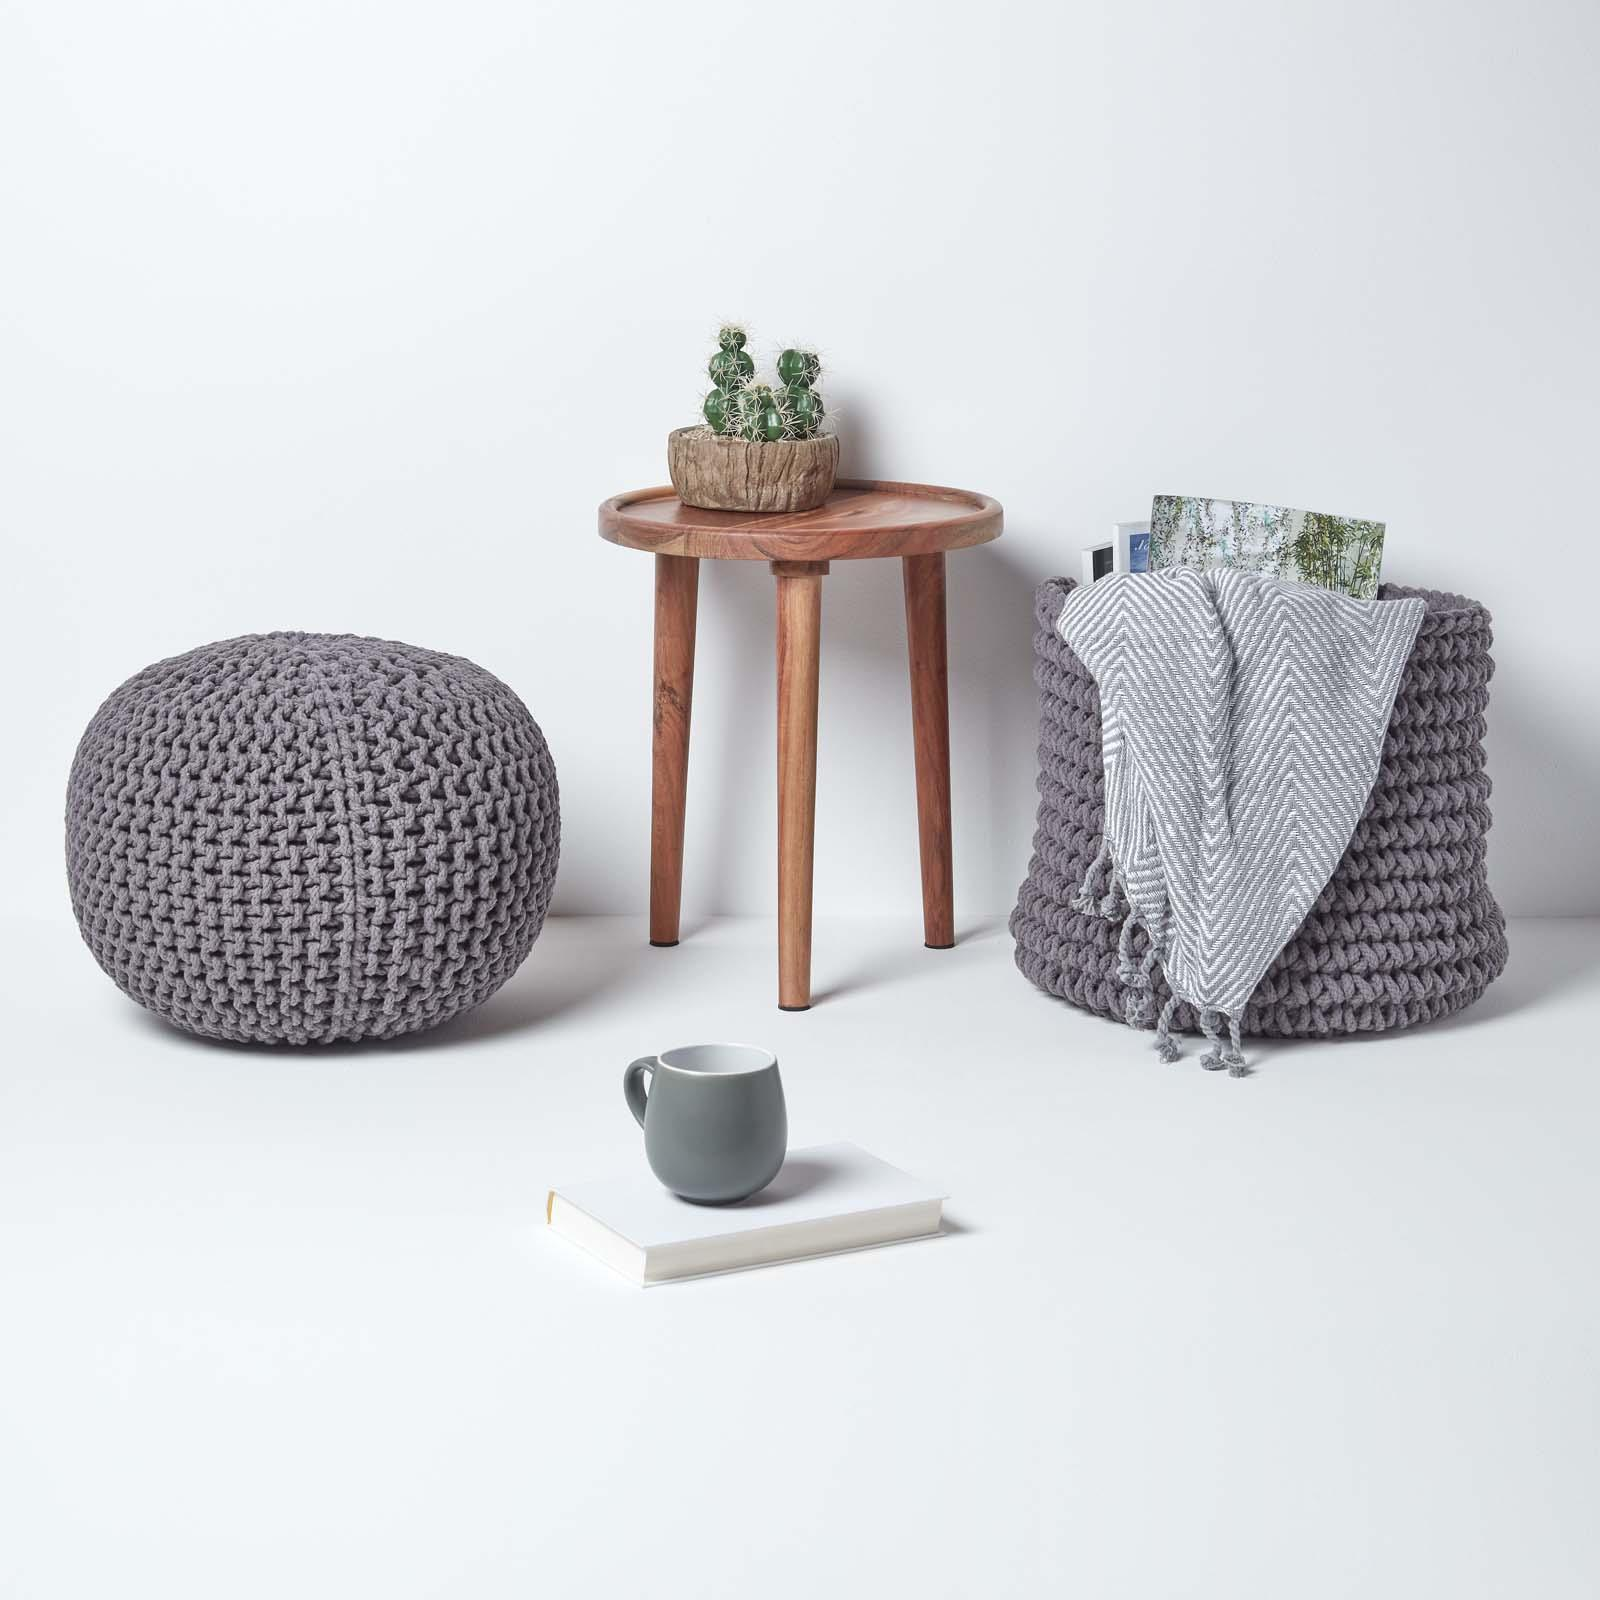 Hand-Knitted-100-Cotton-Pouffes-Round-Sphere-Or-Cube-Square-Chunky-Footstools thumbnail 60